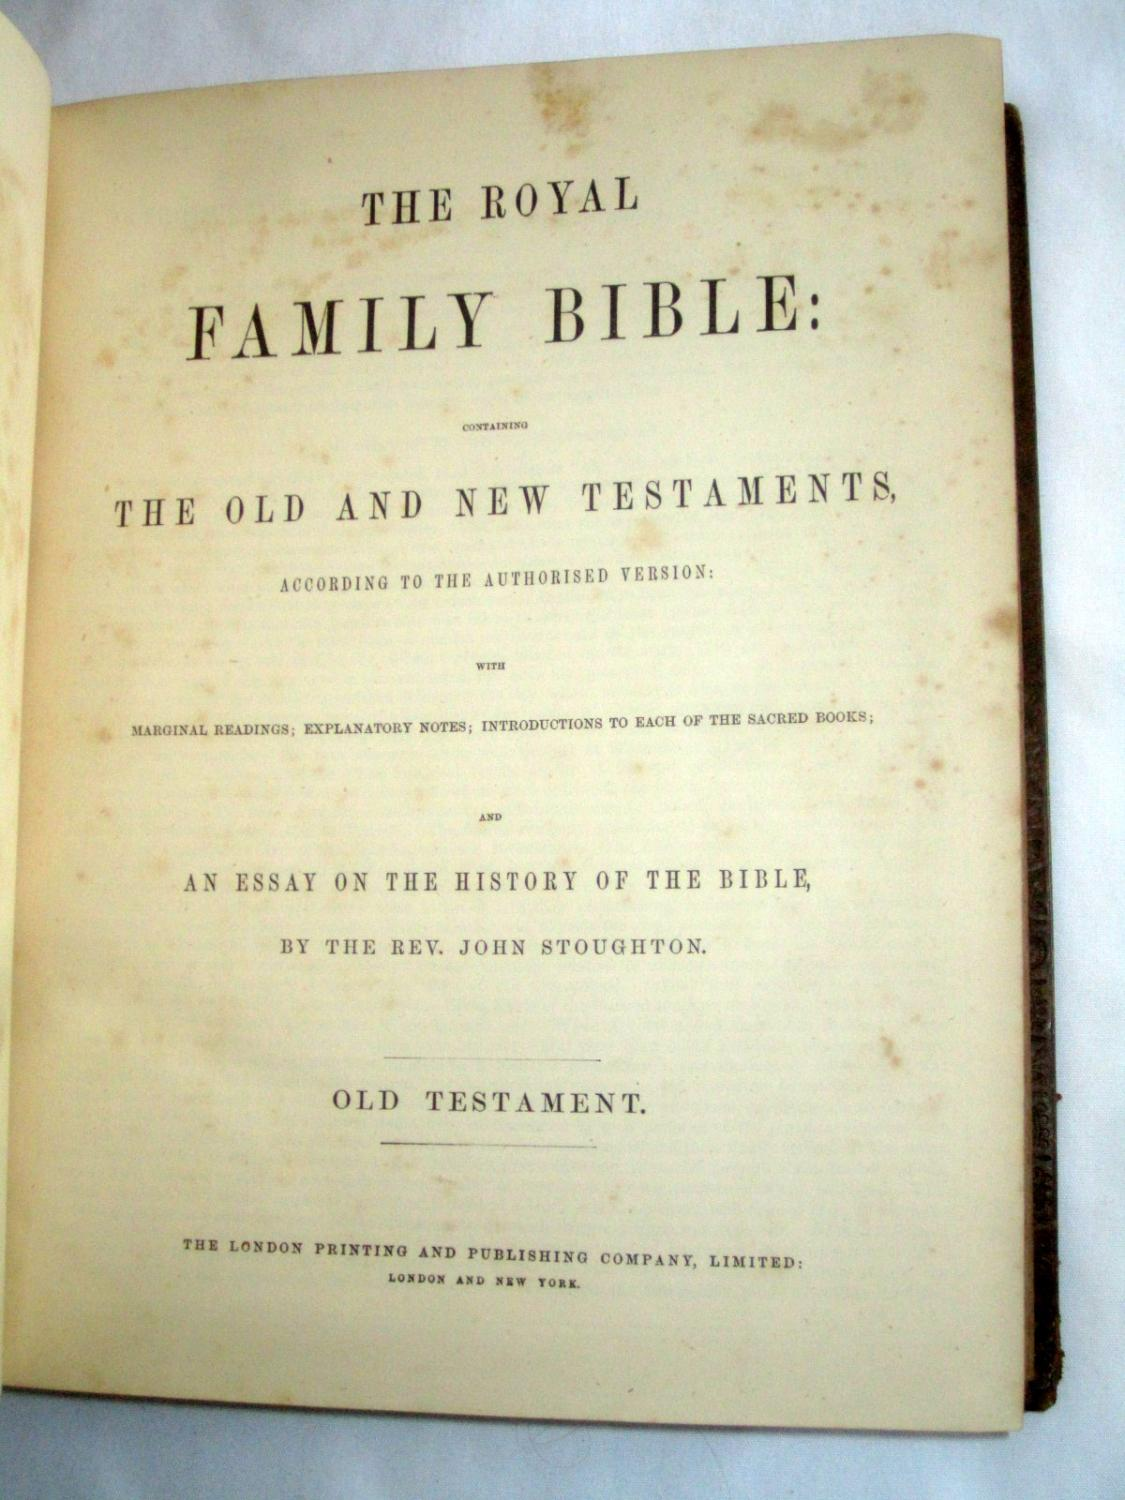 Old testament and the greek bible essay | Custom paper